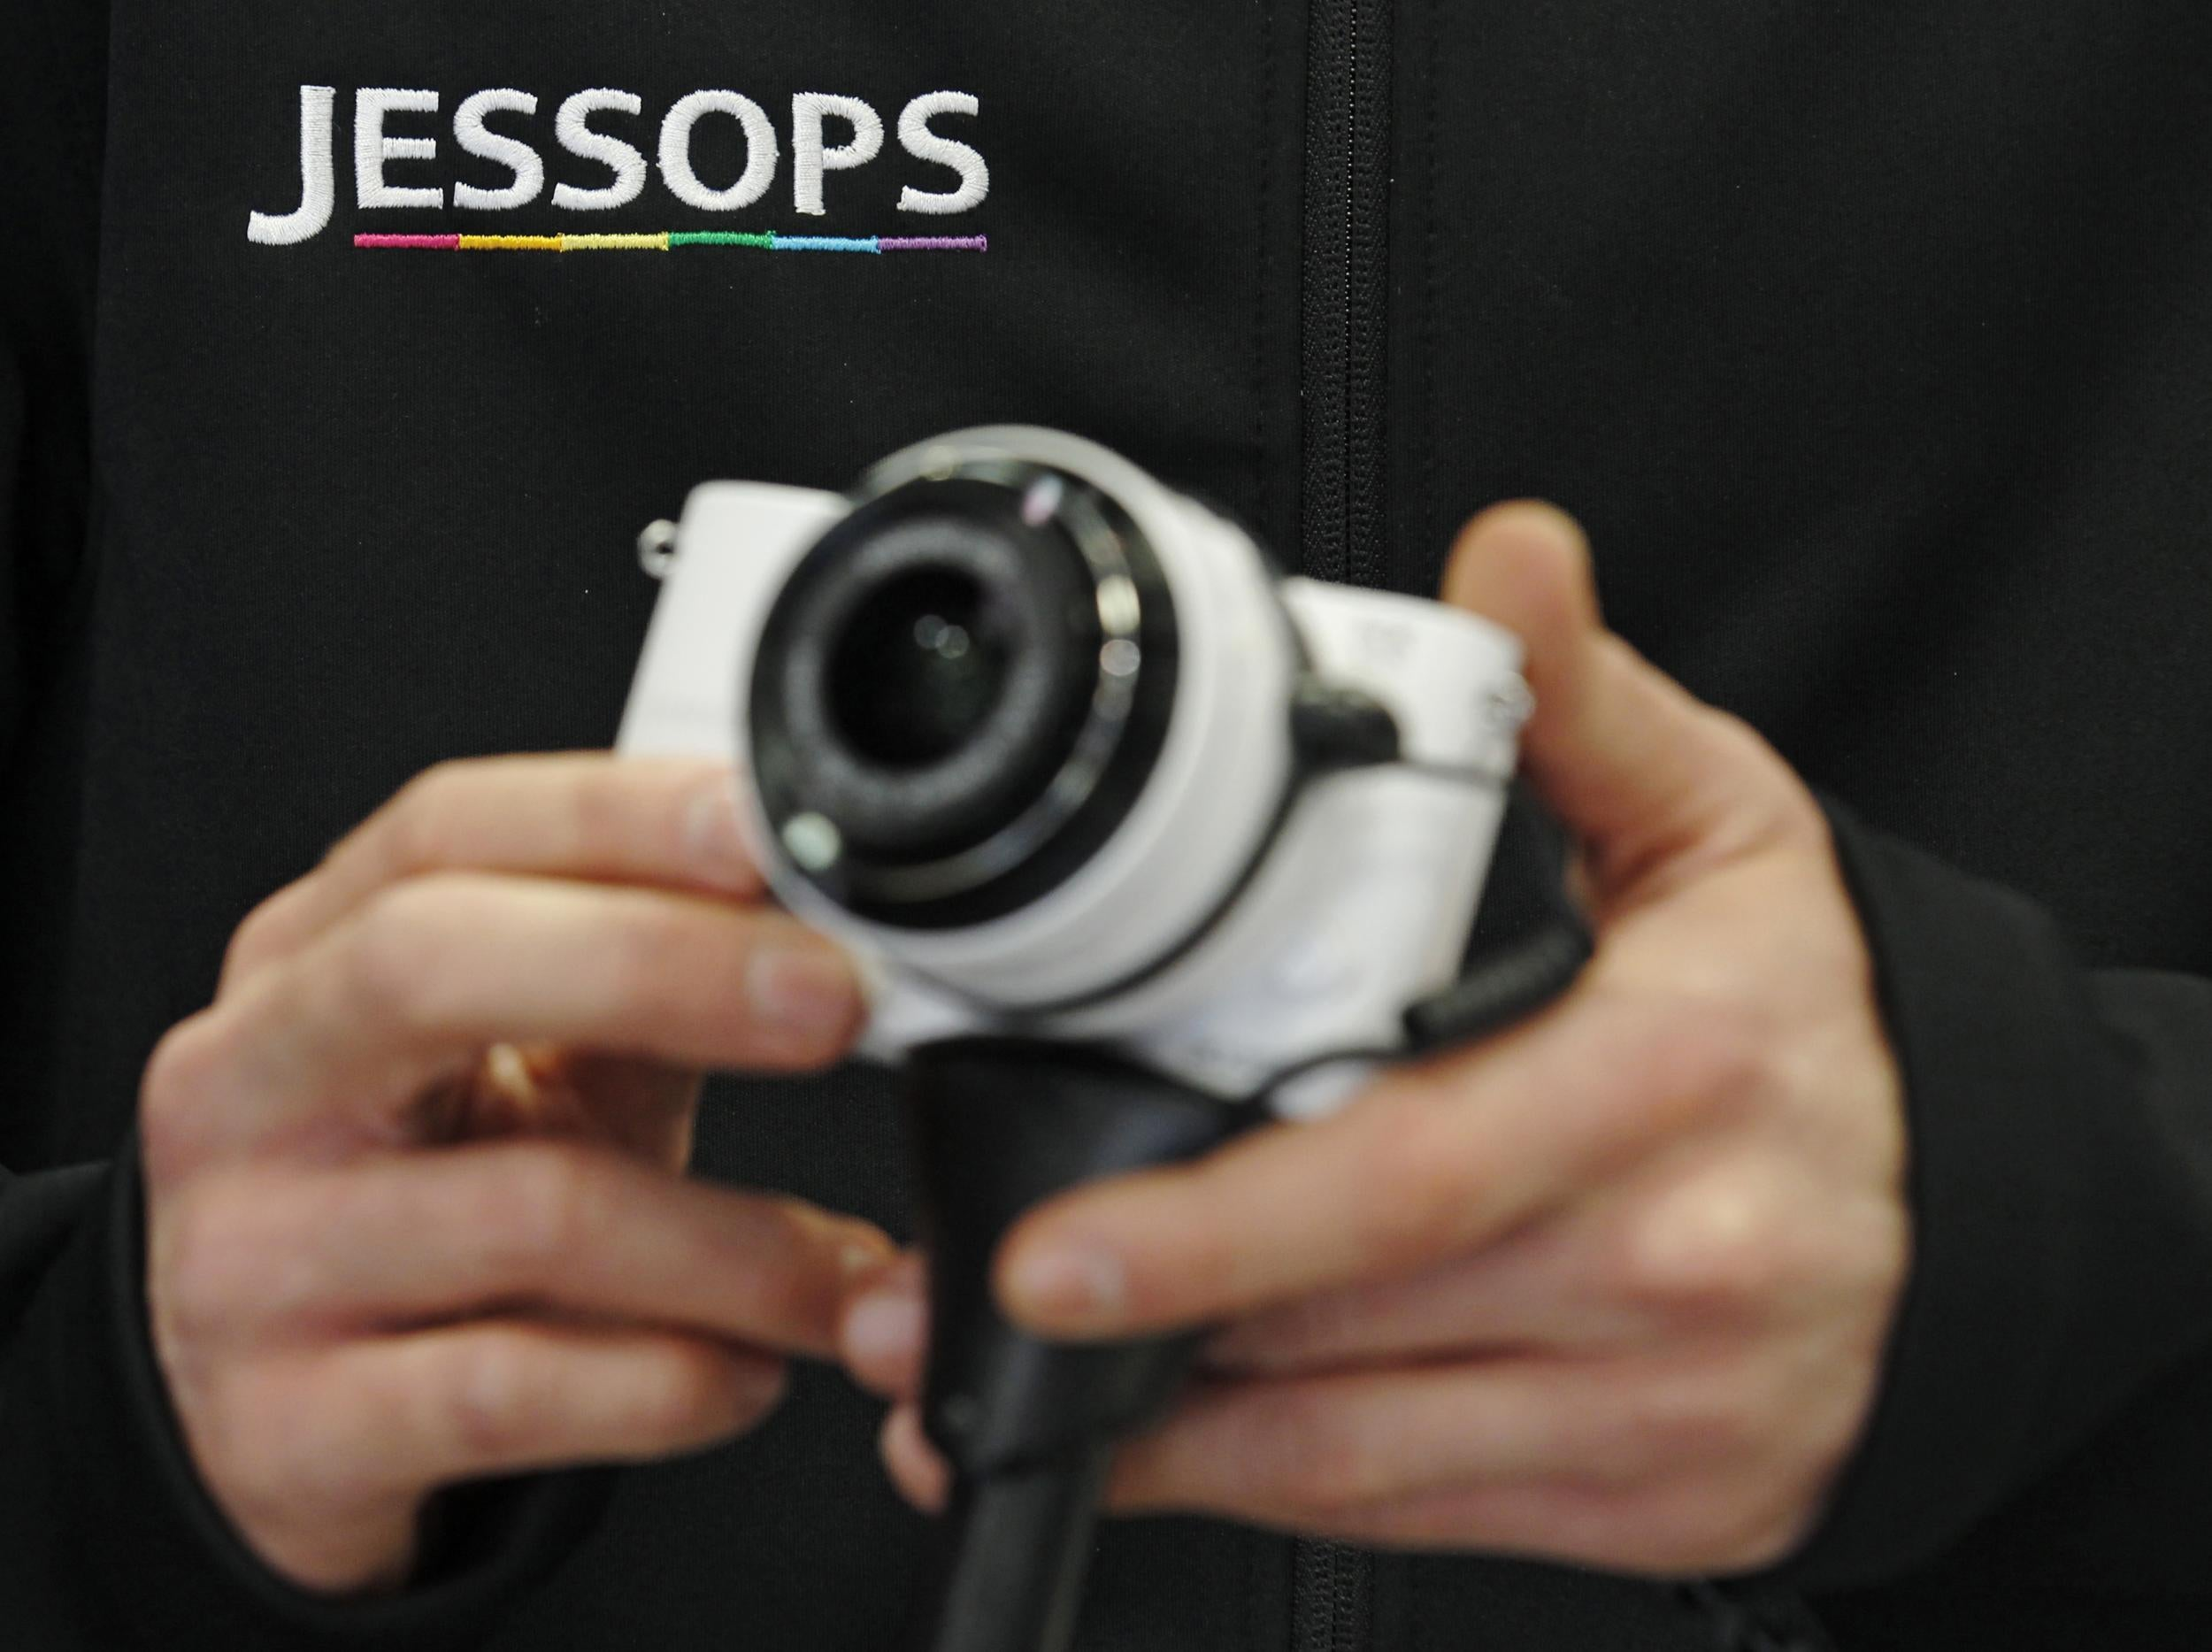 Jessops to call in administrators and shut stores as Dragons Den star Peter Jones seeks rescue deal